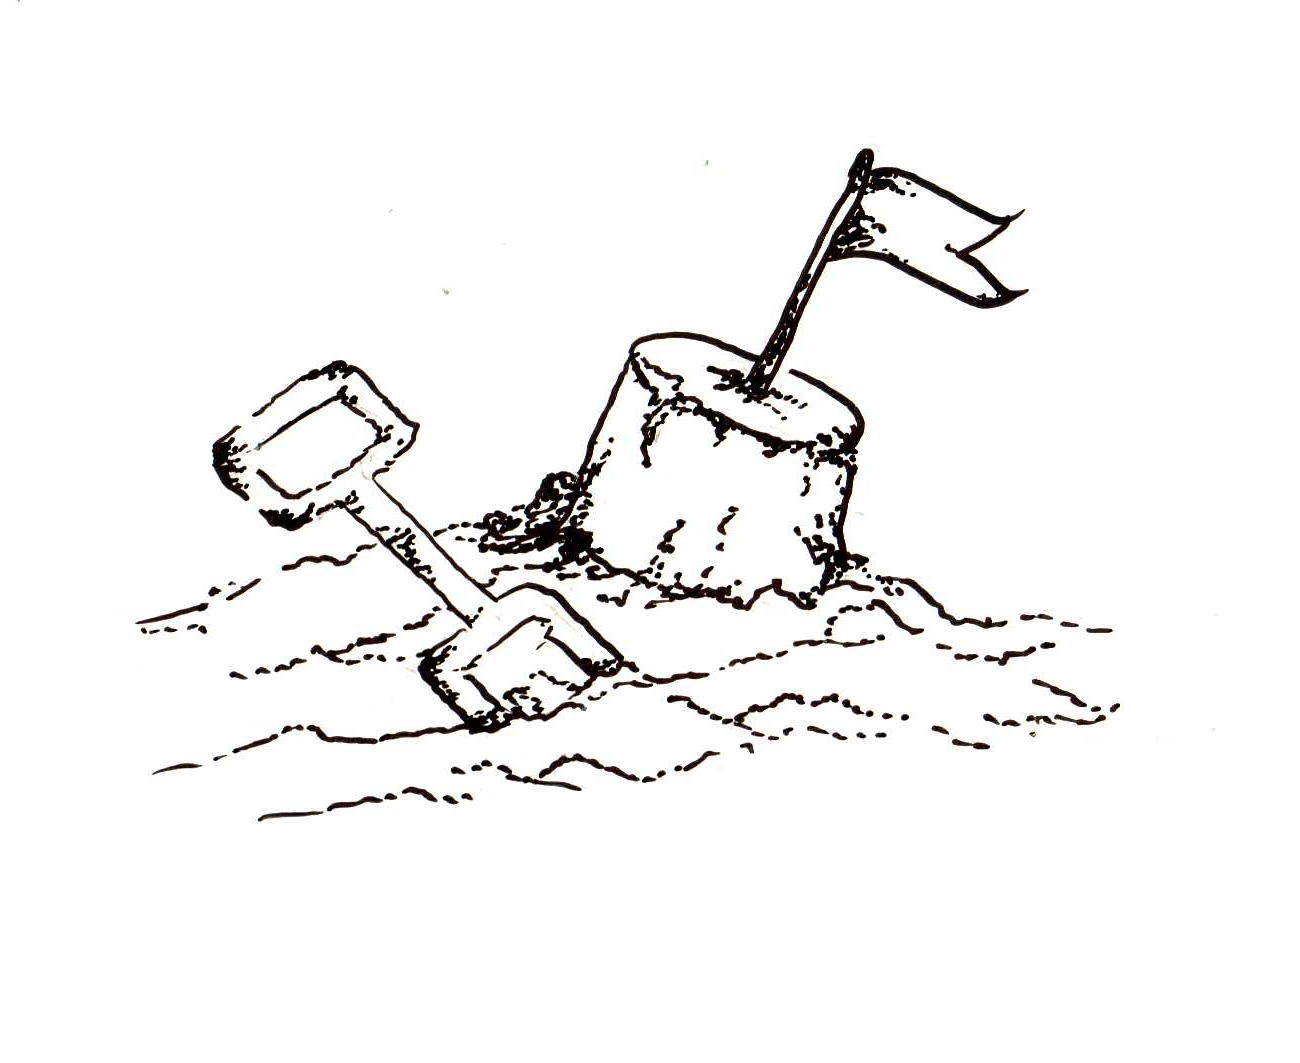 Sand Castle Drawing - ClipArt Best